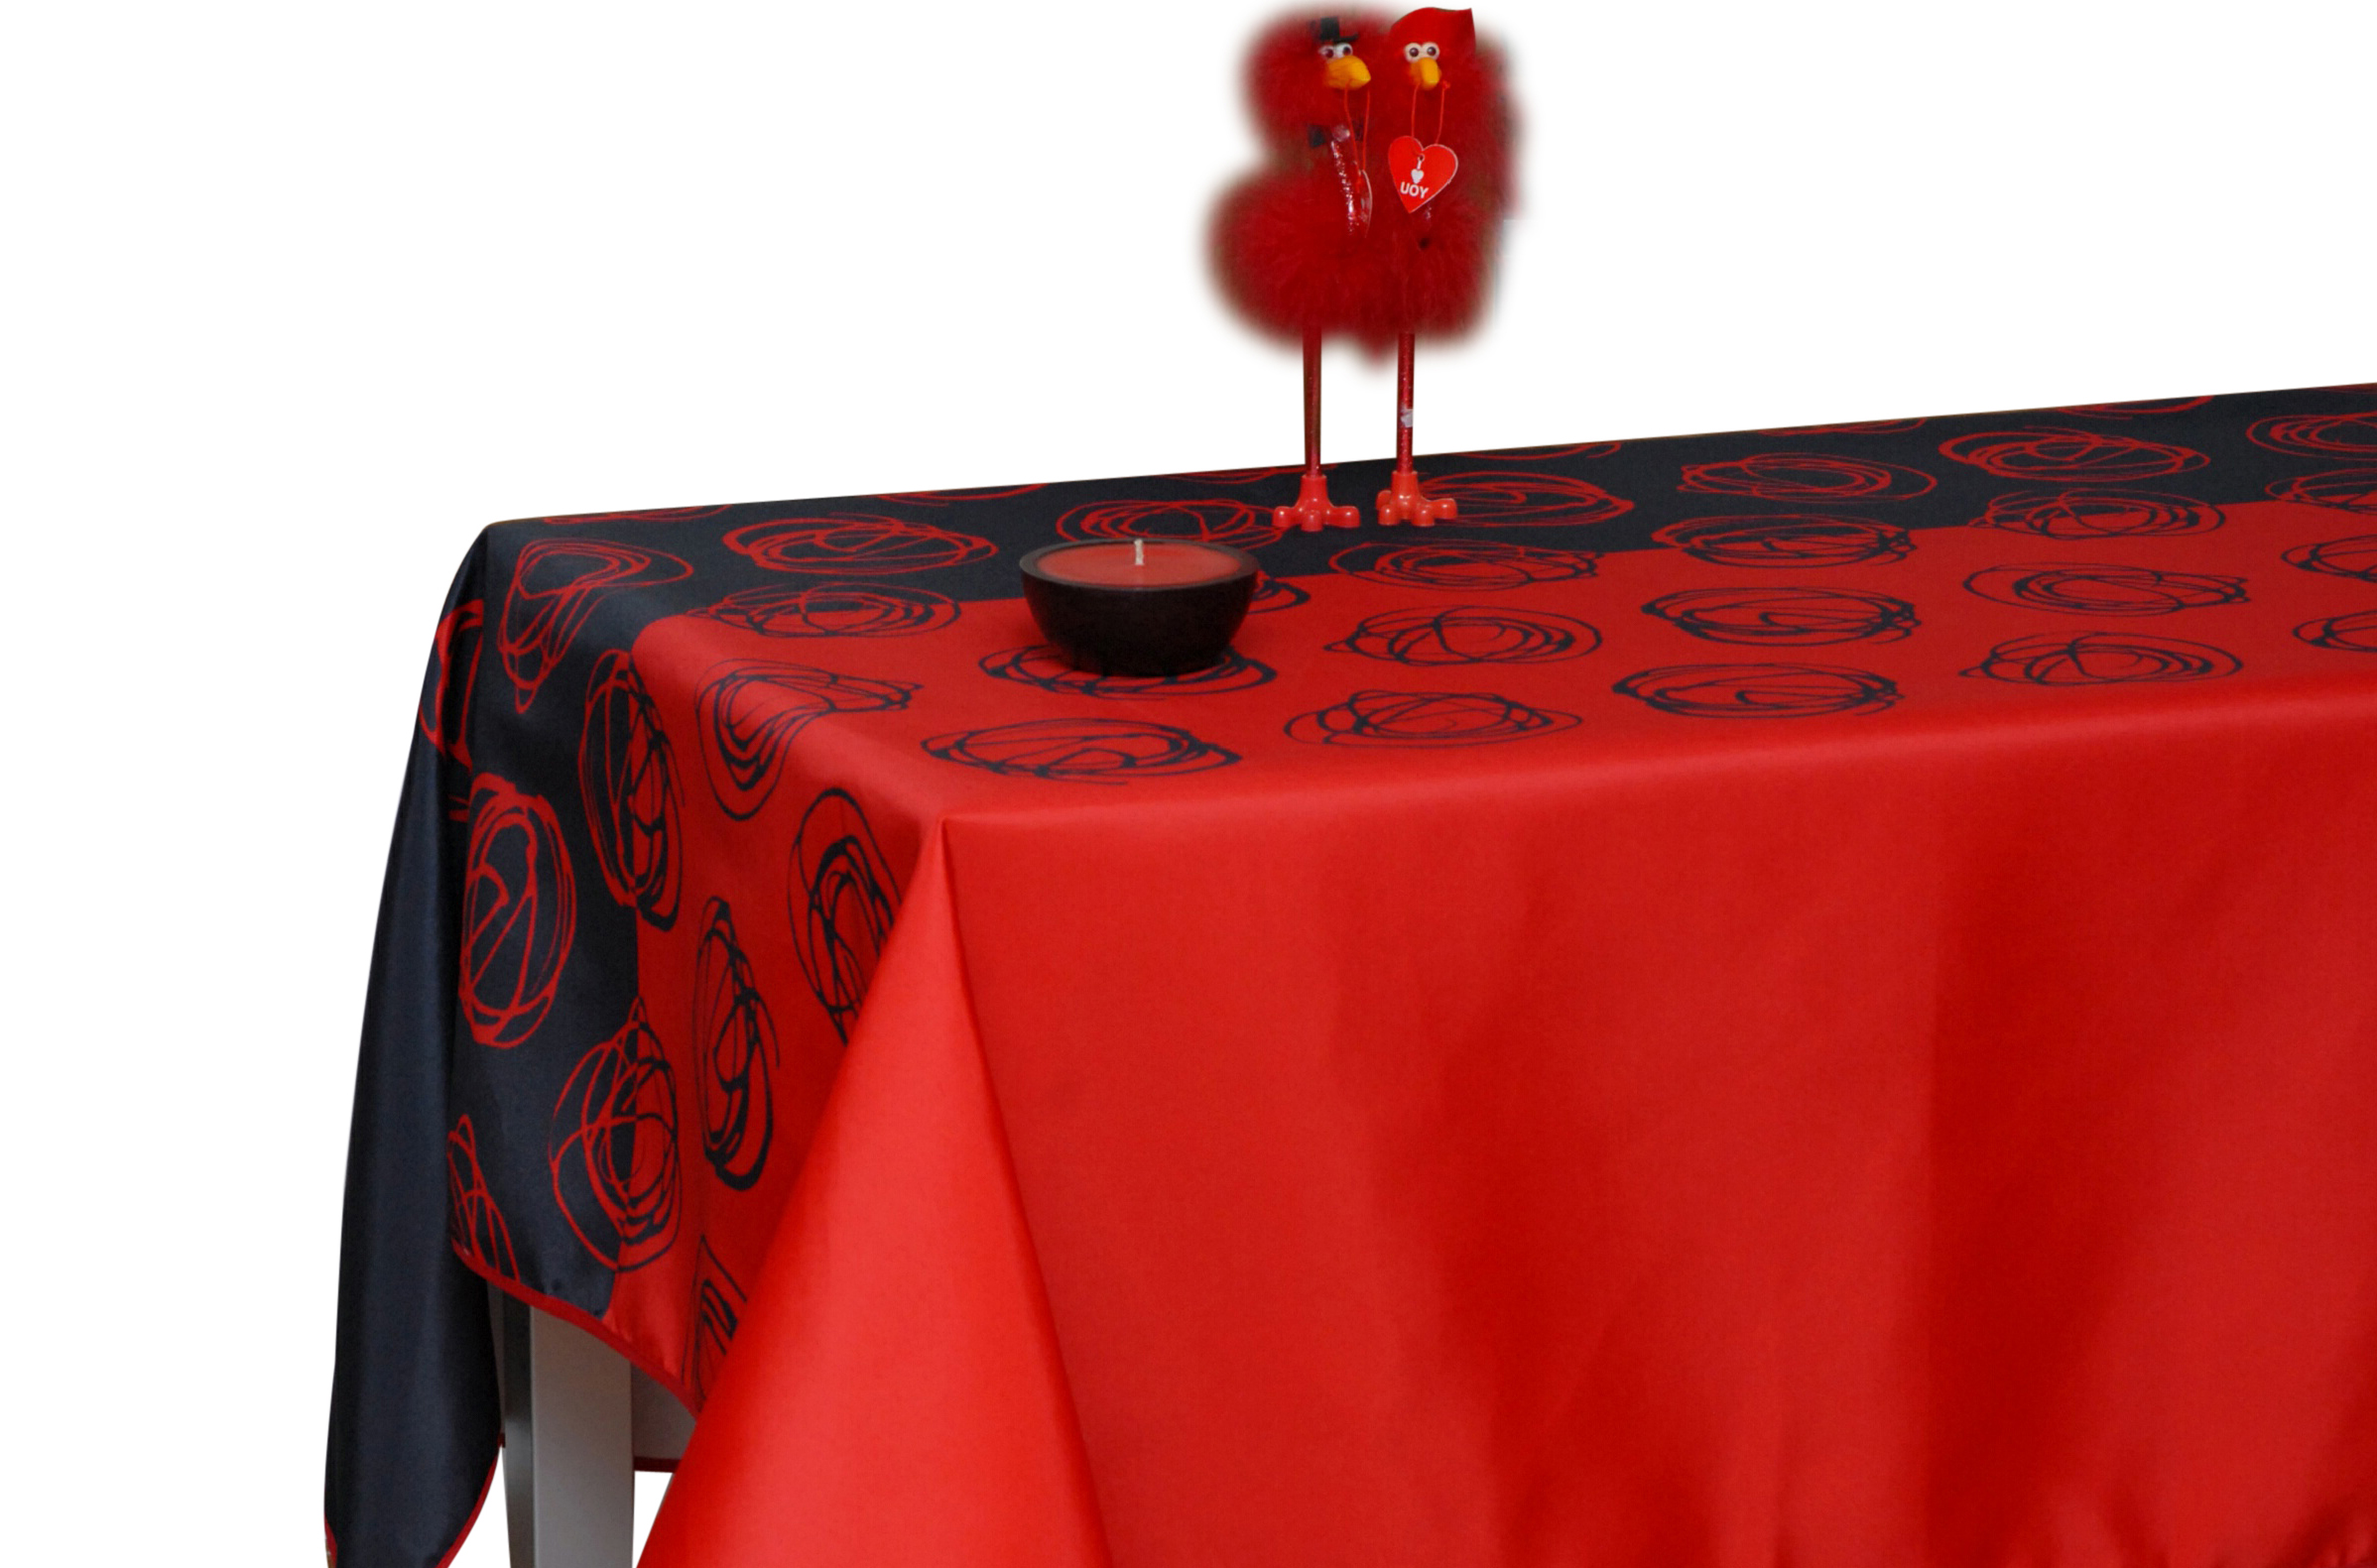 Great Tablecloth Red And Black Swirl Flamenco, Stain Resistant, Washable, Liquid  Spills Bead Up, 60 X 95 Inch Rectangular, Seats 8 To 10 People (Other Size  ...